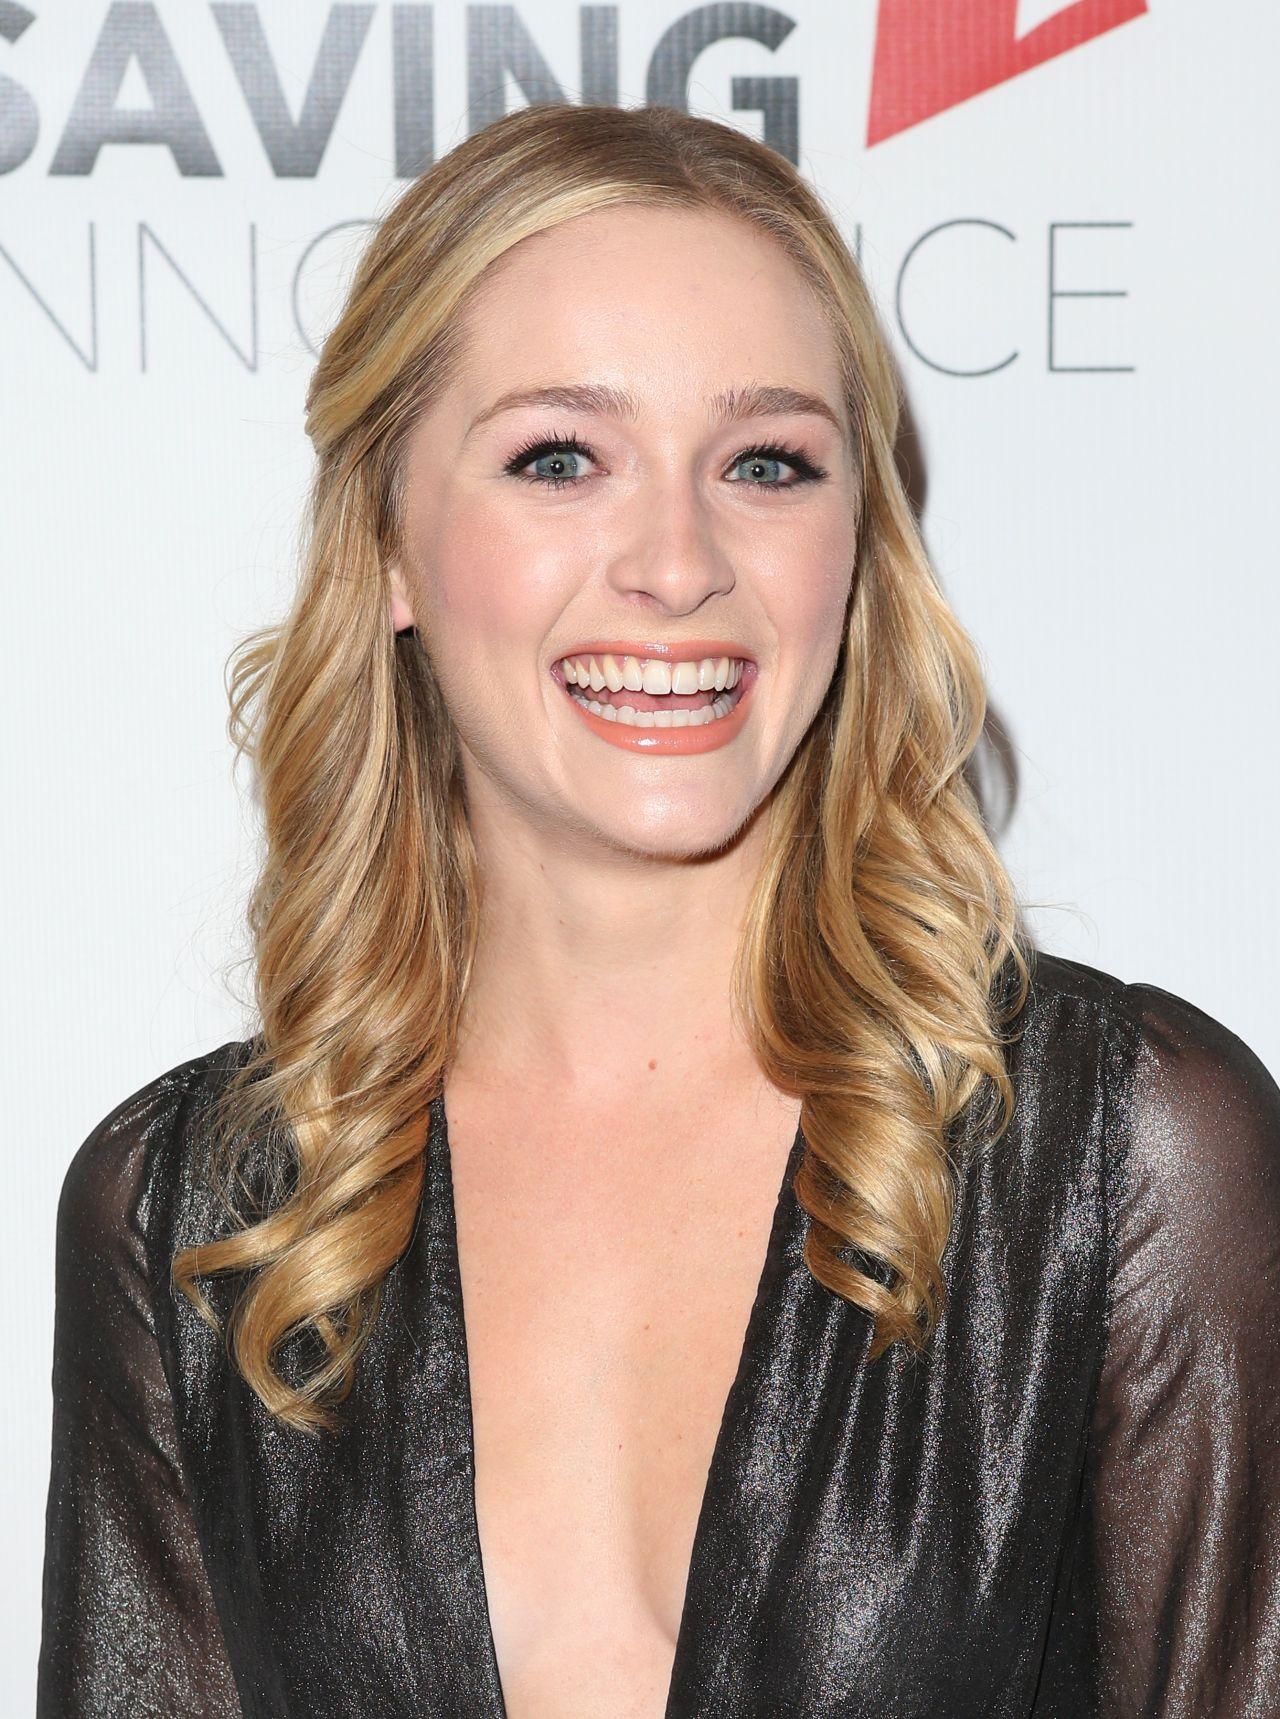 Greer Grammer naked (44 pictures) Sideboobs, Facebook, butt